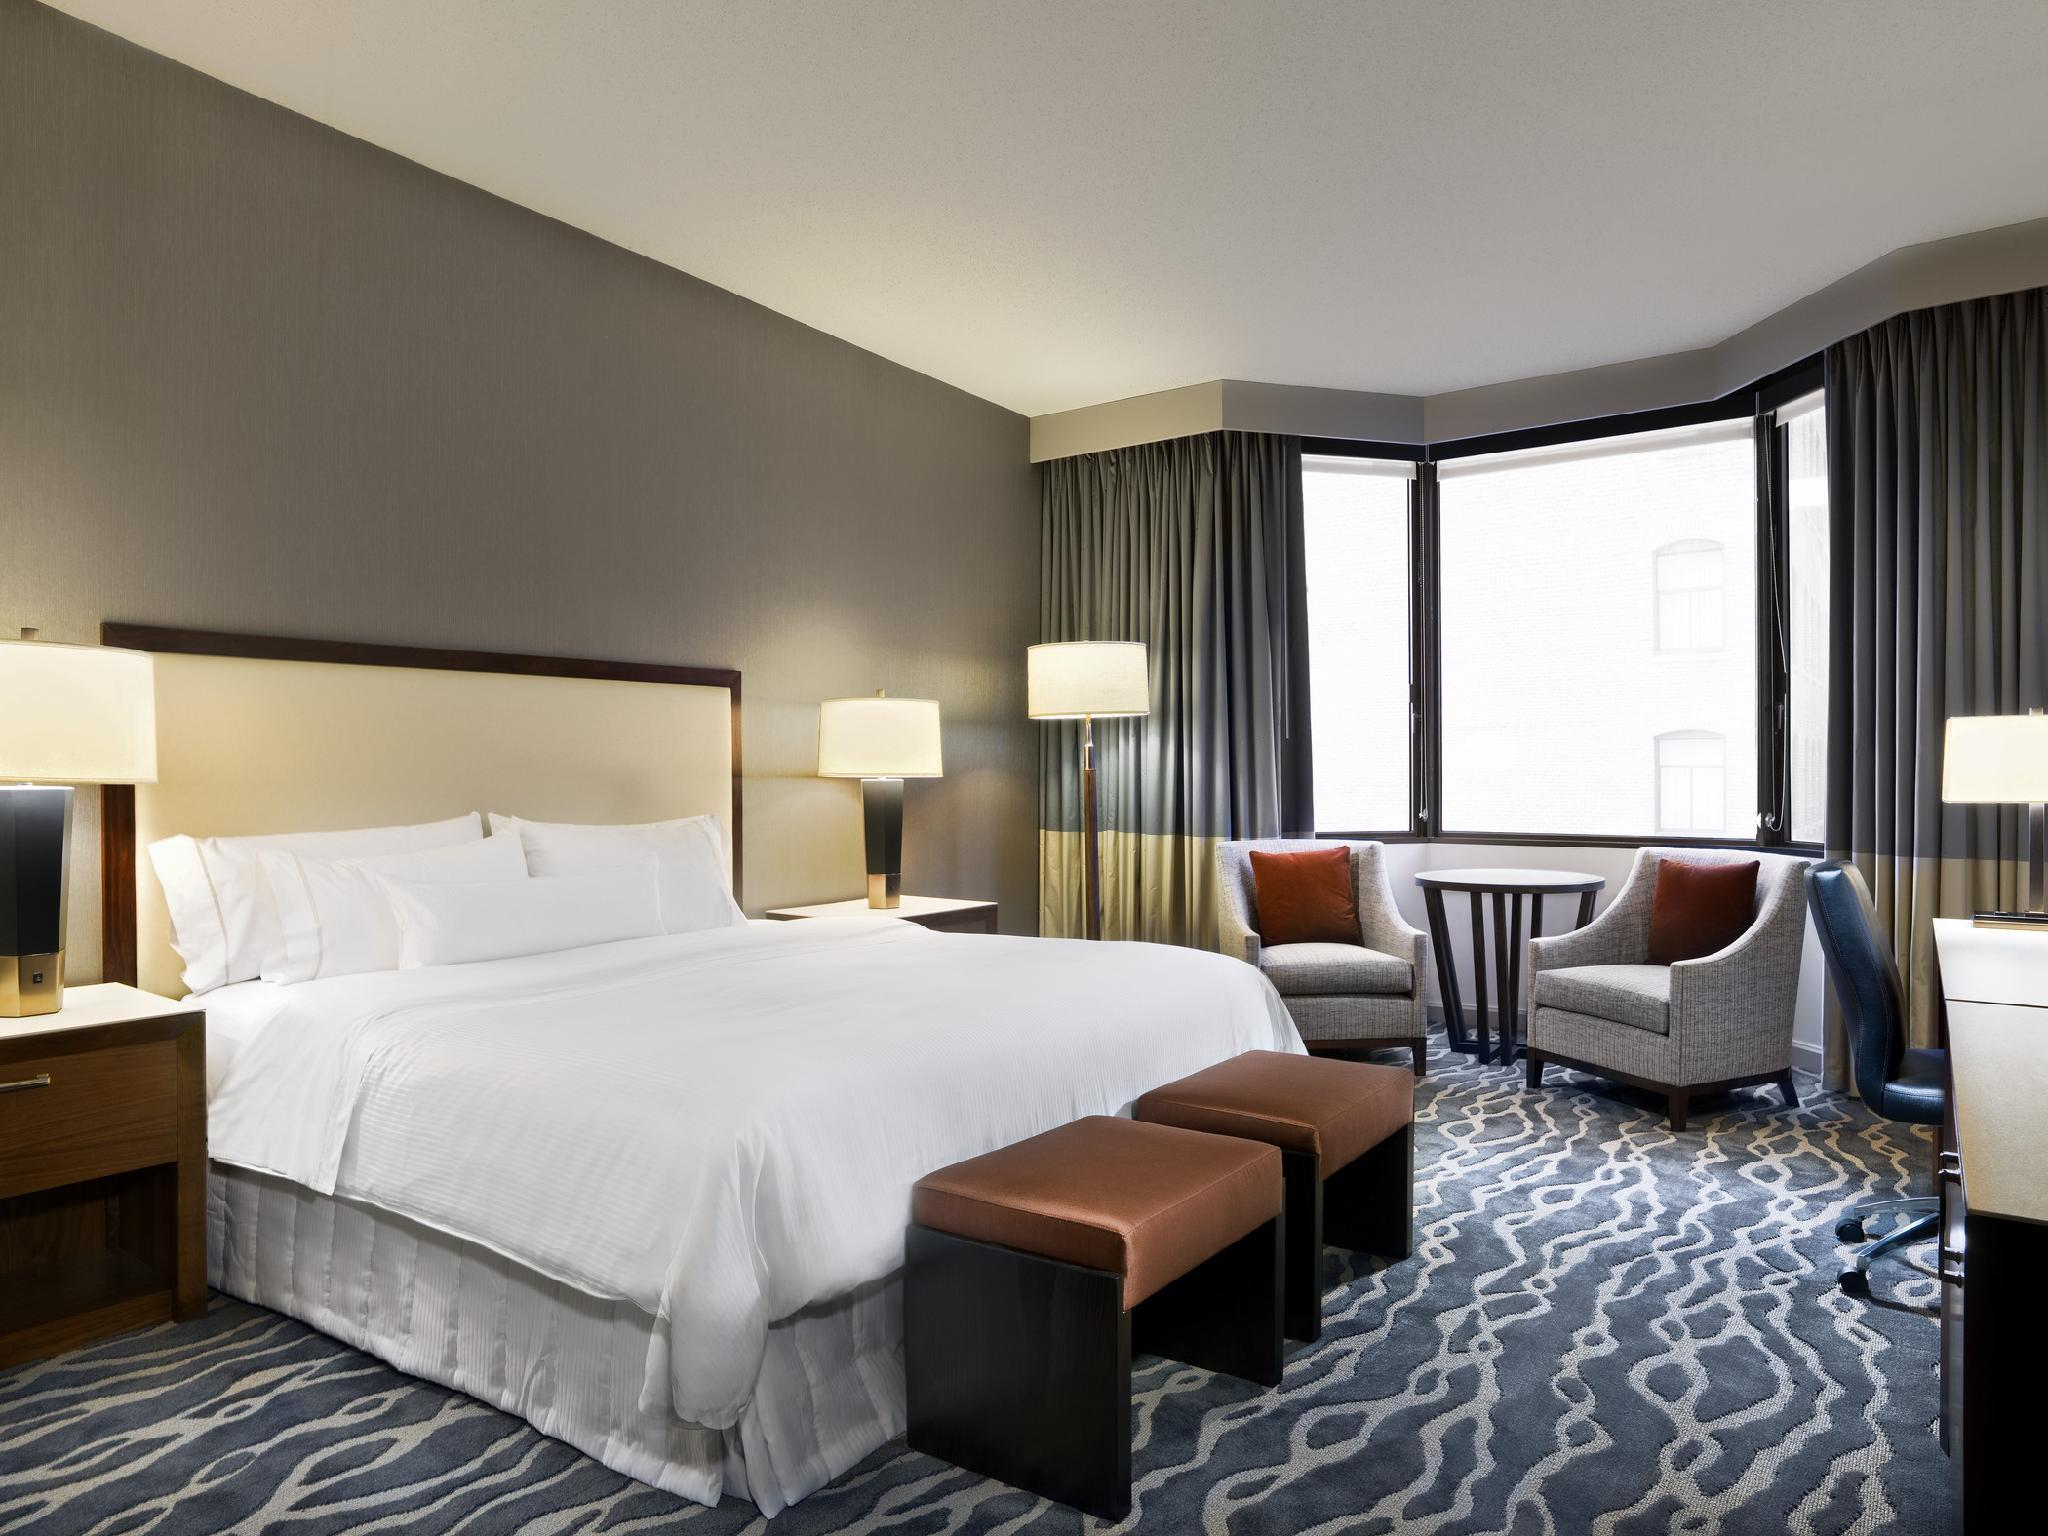 Deluxe, Guest room, 1 King, Limited view, Tower